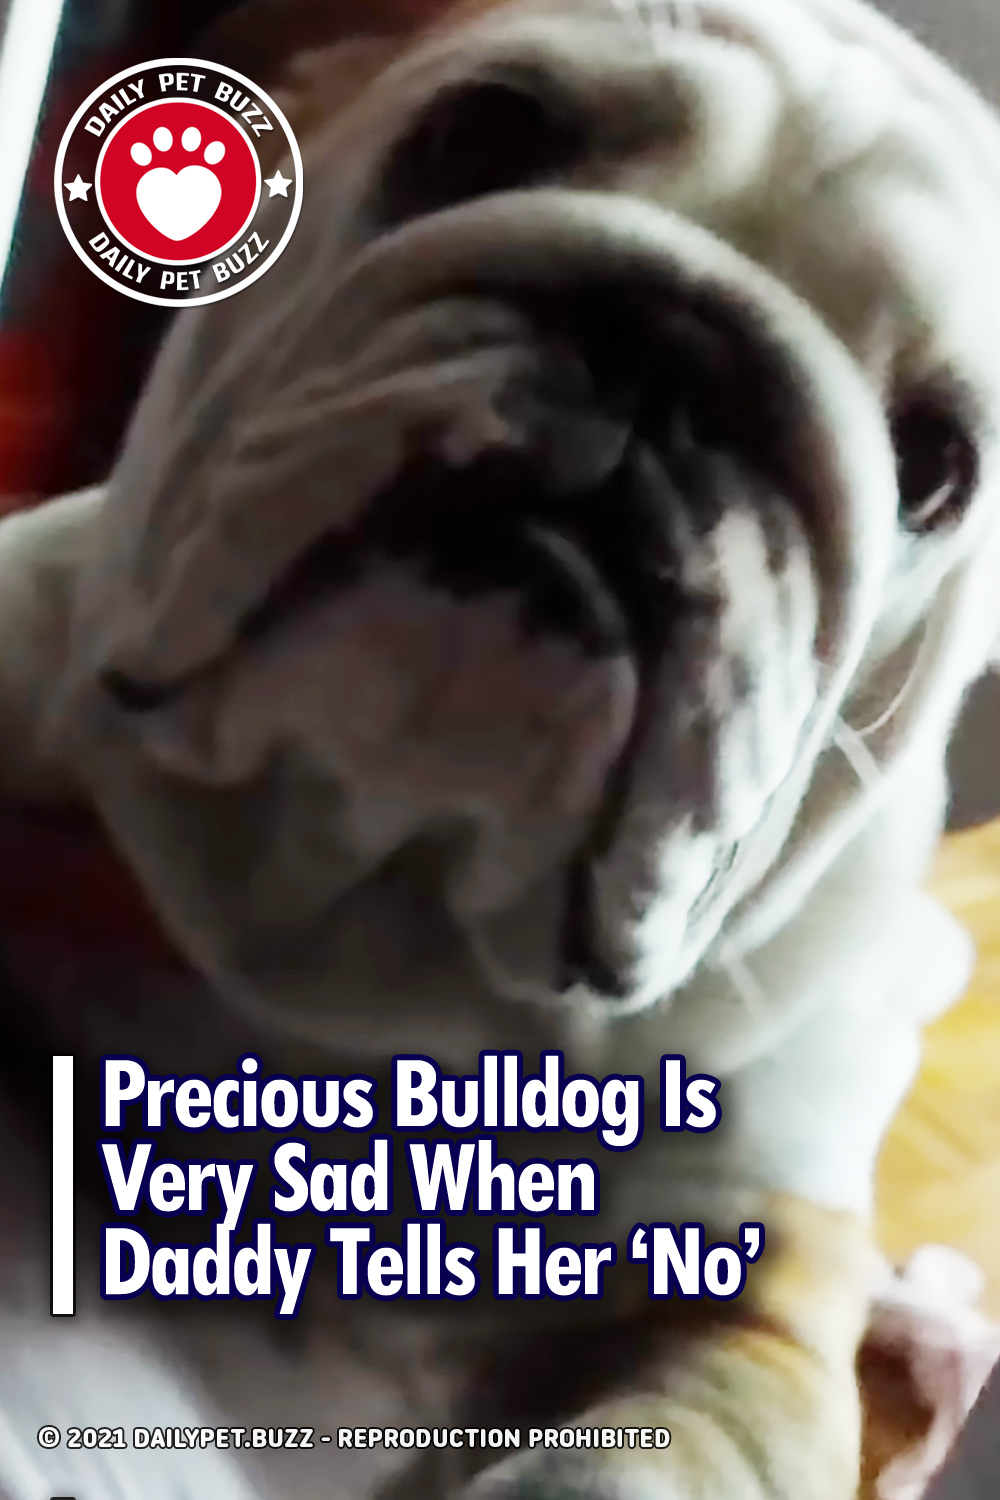 Precious Bulldog Is Very Sad When Daddy Tells Her \'No\'